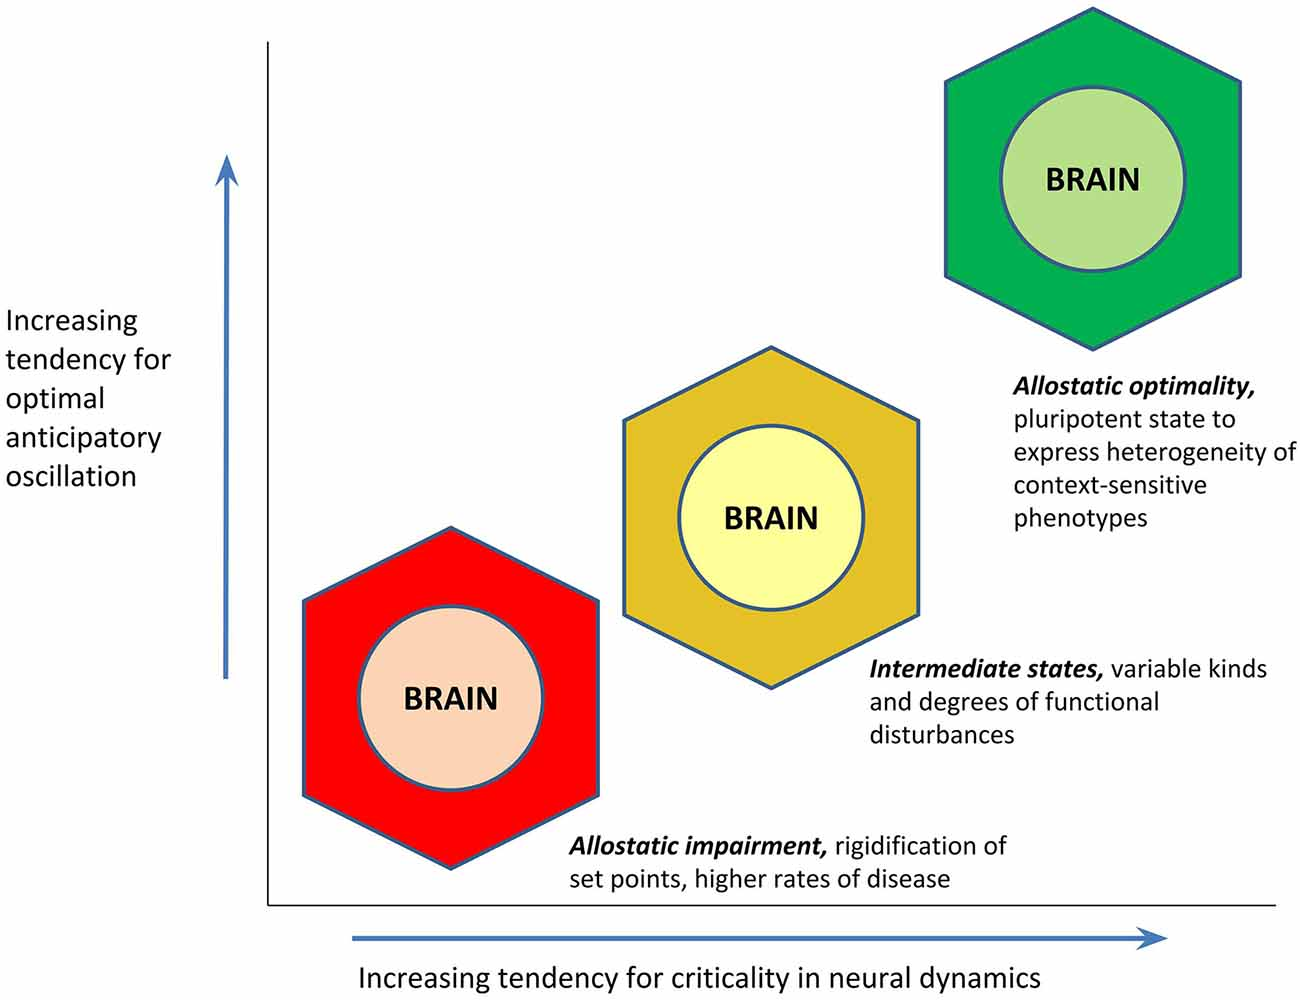 Frontiers | A Copernican Approach to Brain Advancement: The